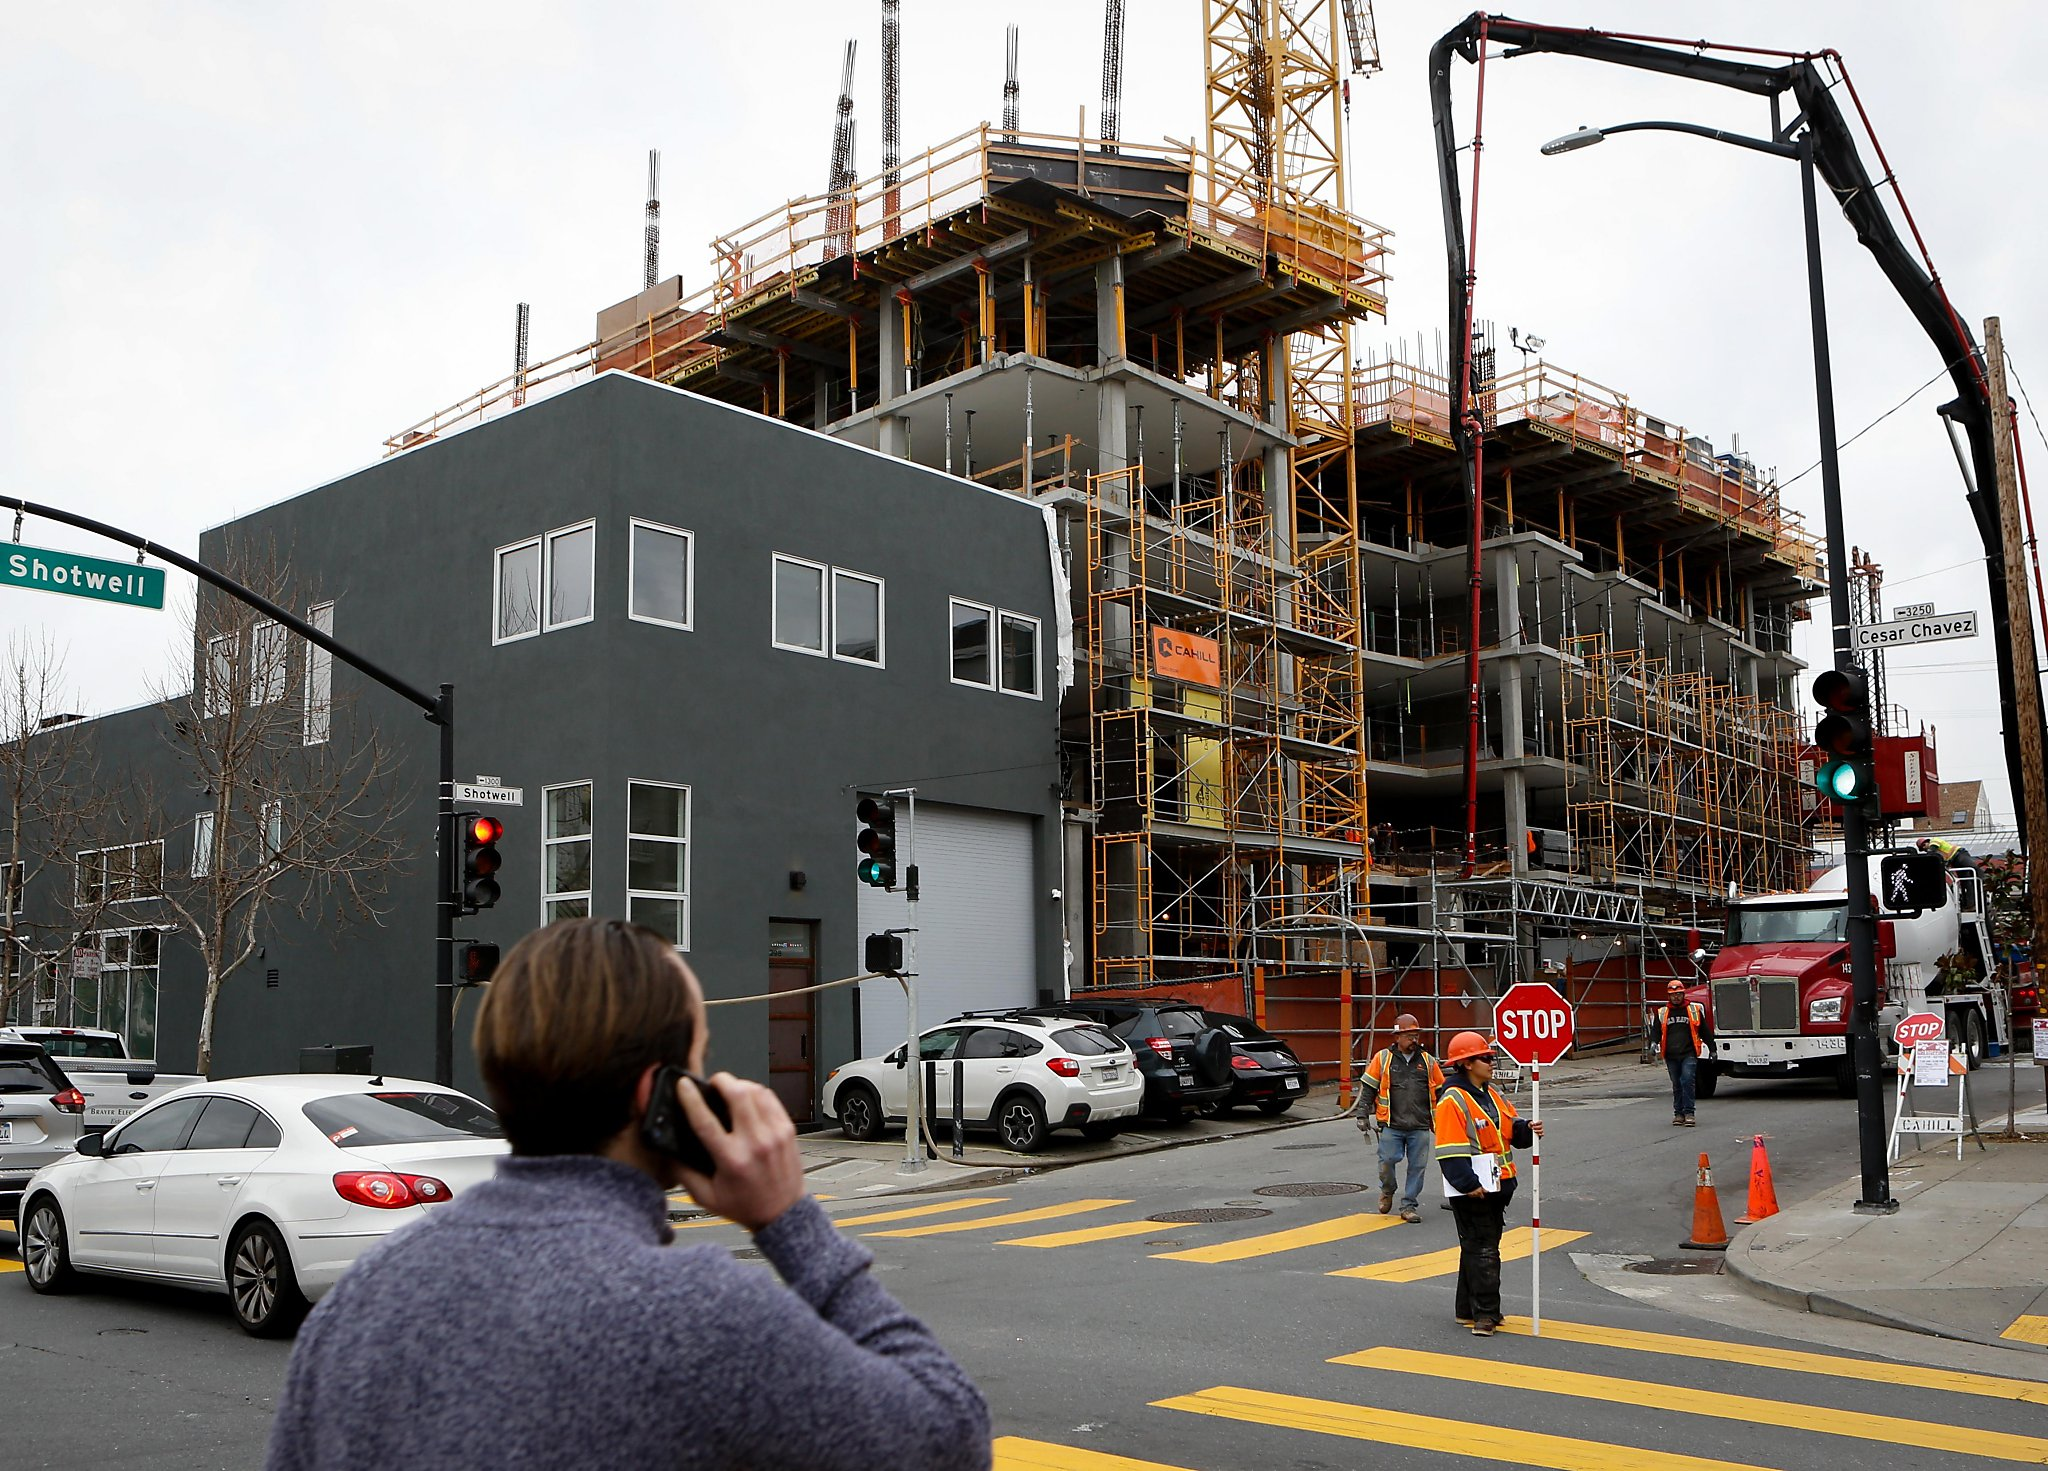 An affordable housing building under construction at Cesar Chavez and Shotwell streets.